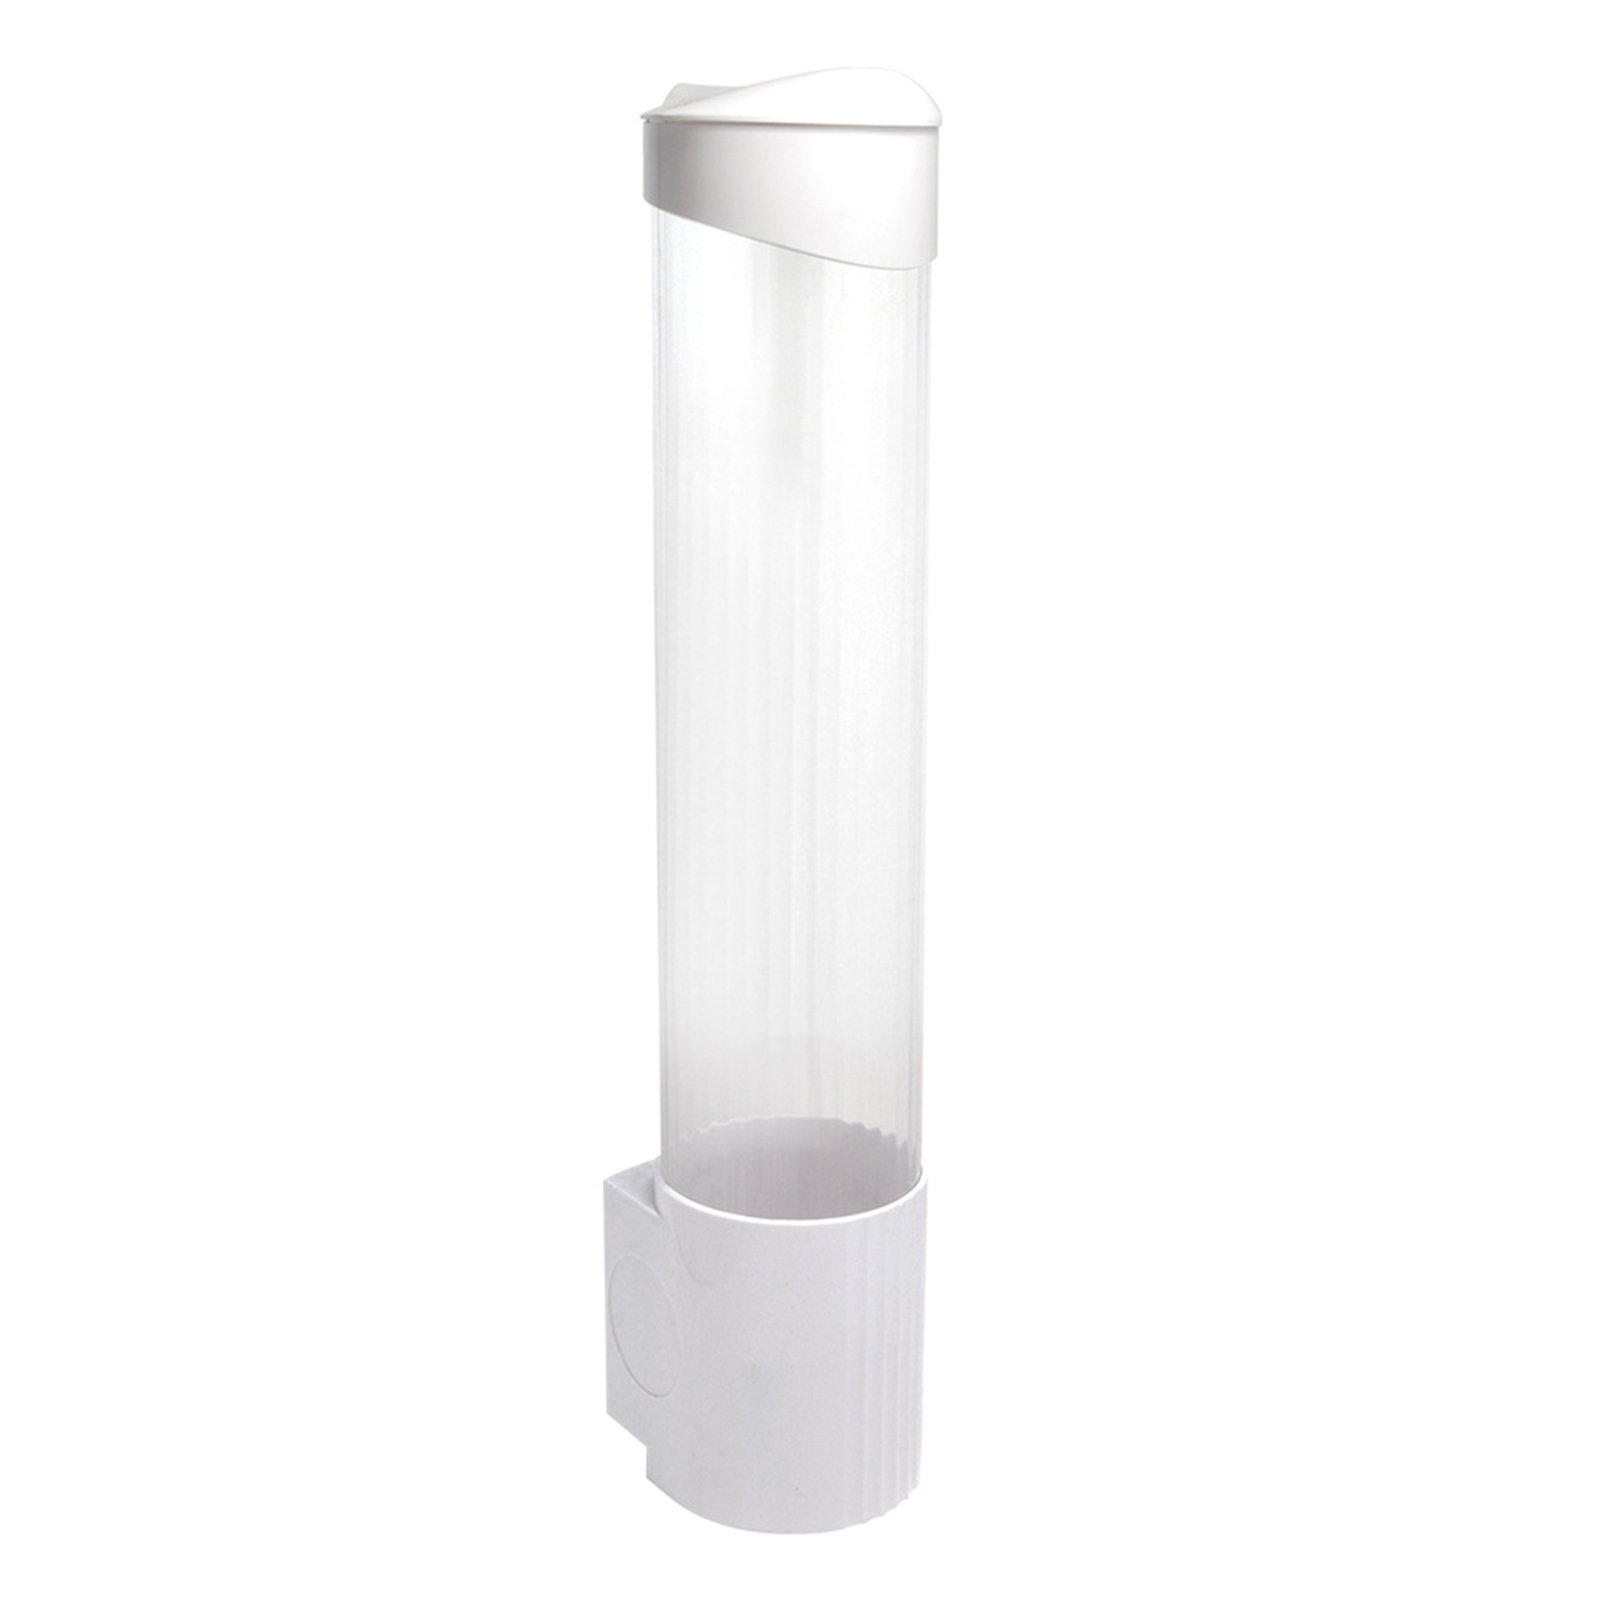 Cup Dispenser (Magnetic or Screw Plate Mountable) WHITE & CLEAR